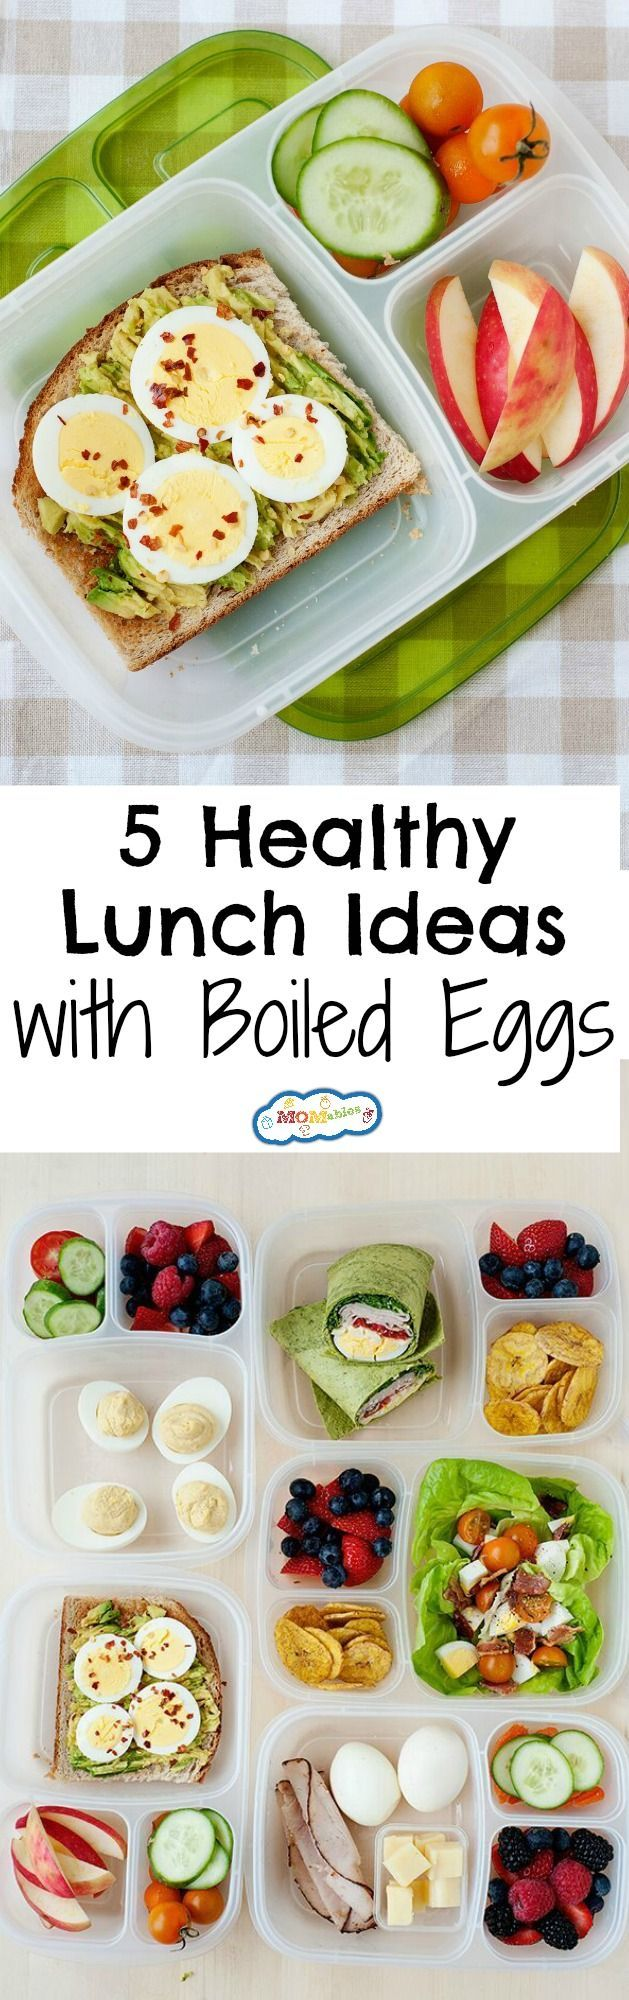 Healthy school and office lunch ideas lunches egg and easy healthy school and office lunch ideas forumfinder Choice Image